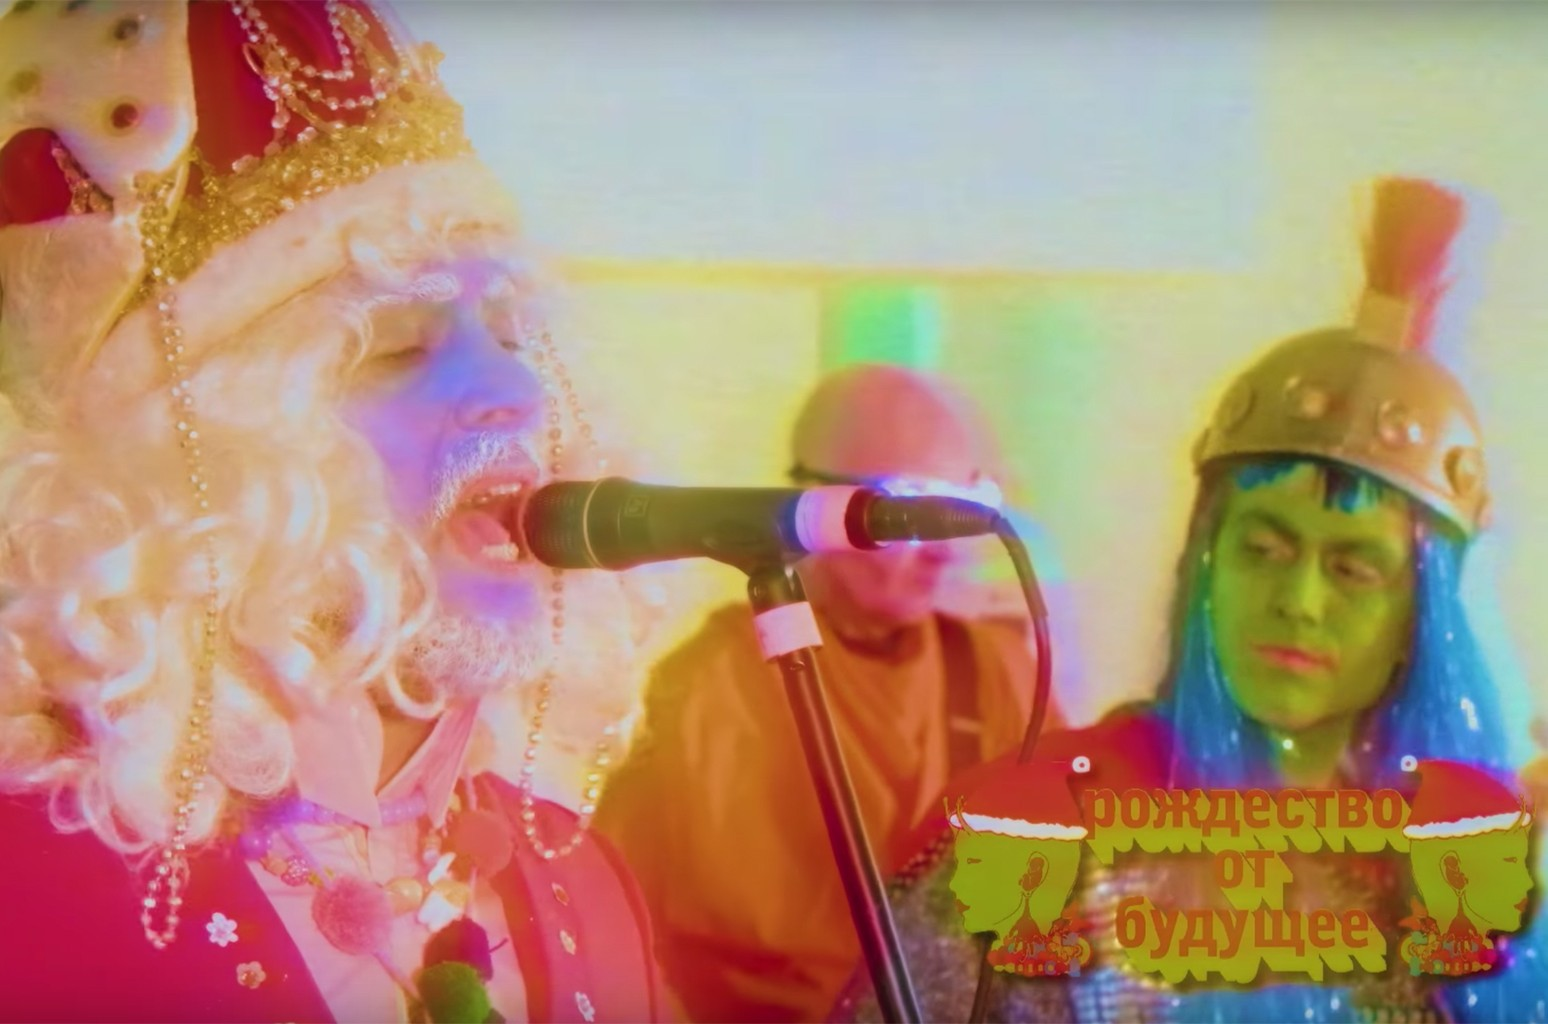 The Flaming Lips - Peace On Earth/Little Drummer Boy